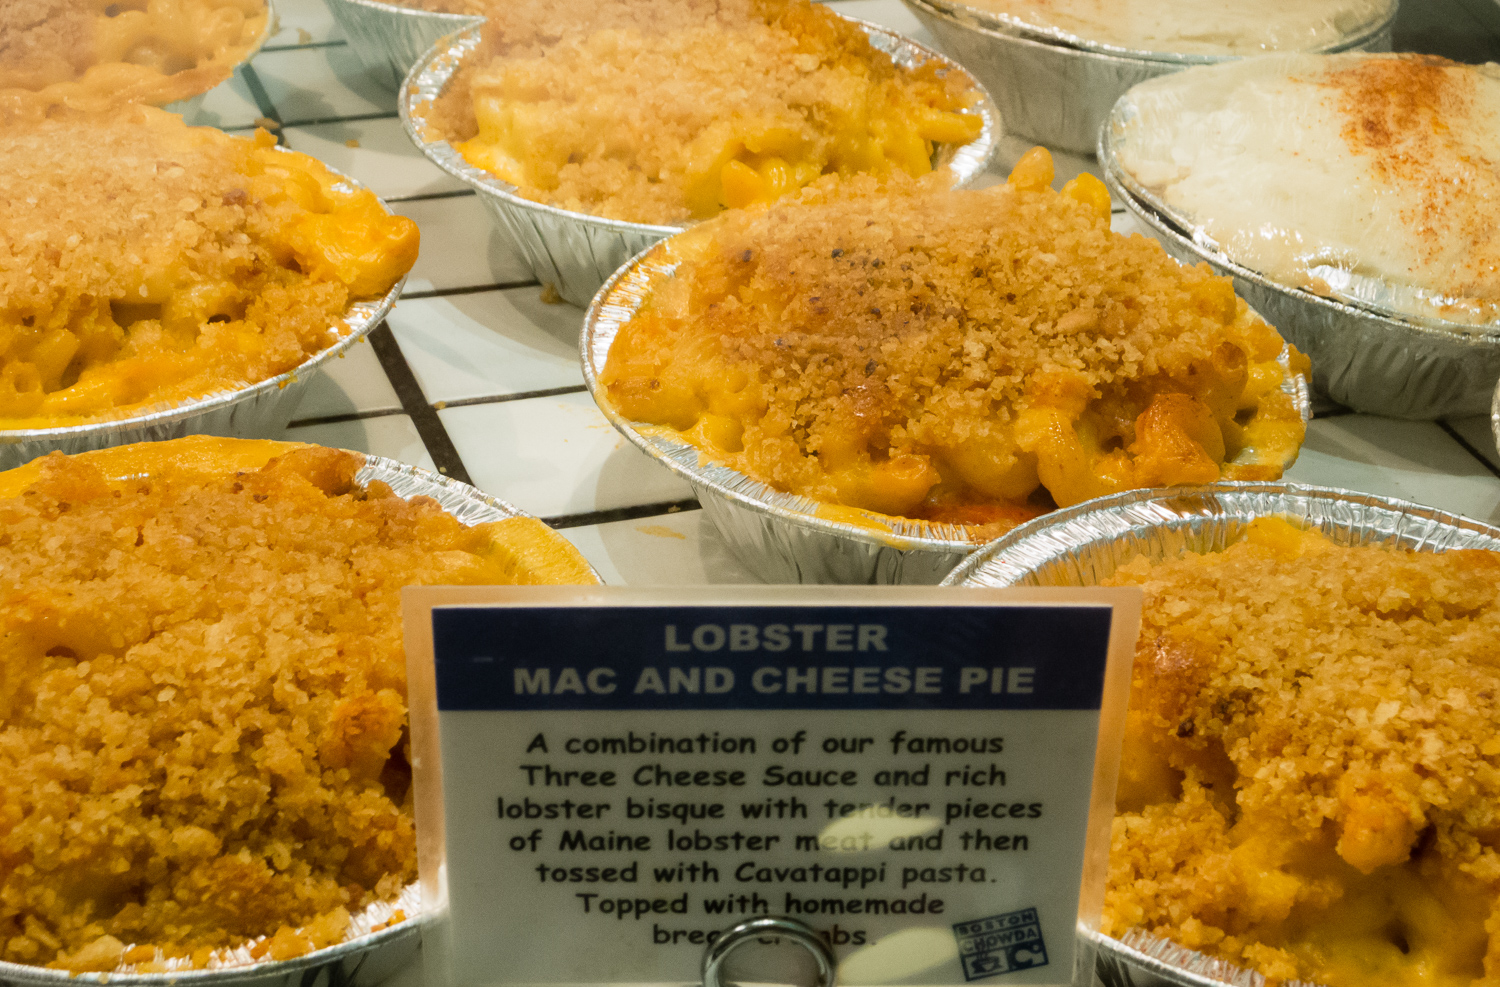 Lobster Mac And Cheese Pies At Boston Chowda In Faneuil Hall Boston Massachusetts